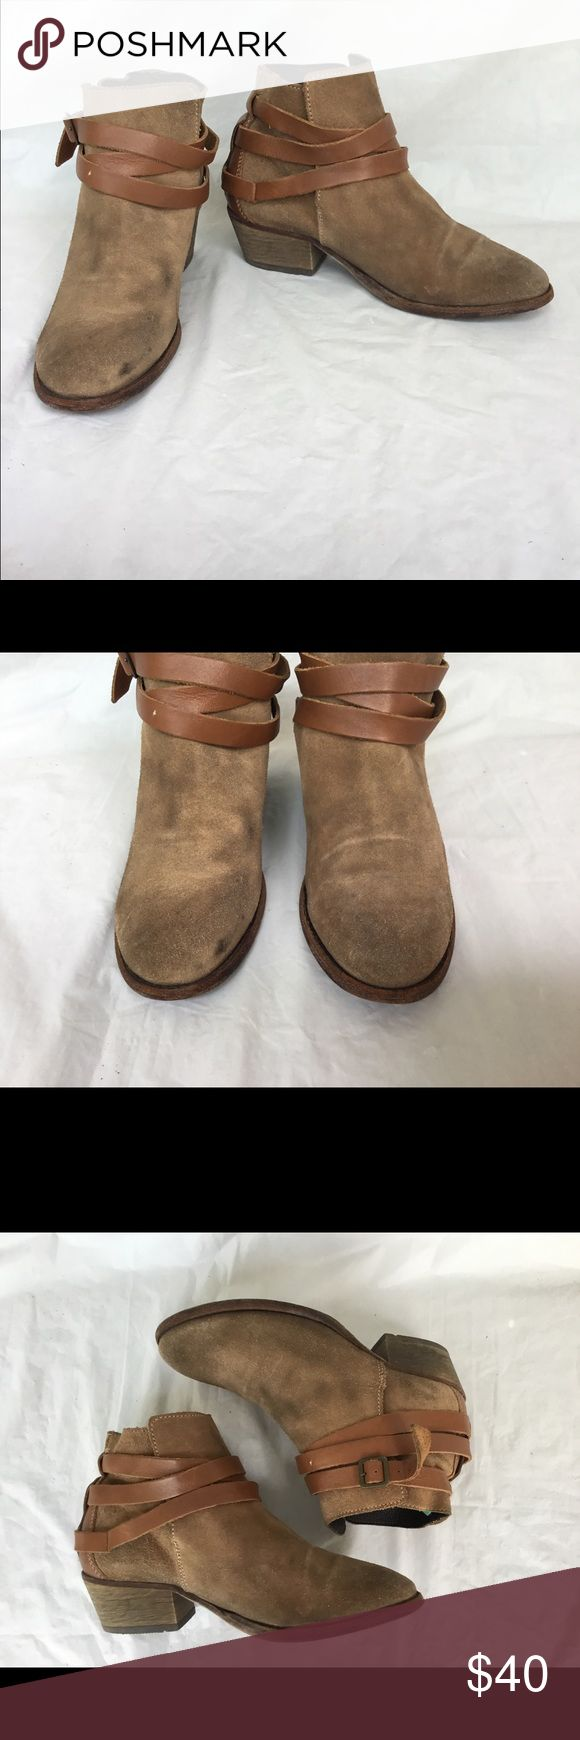 H by Hudson Horrigsn suede ankle boot 38 Tan suede boot in with wear noted . Leather wrap around trim and side zipper H By Hudson Shoes Ankle Boots & Booties